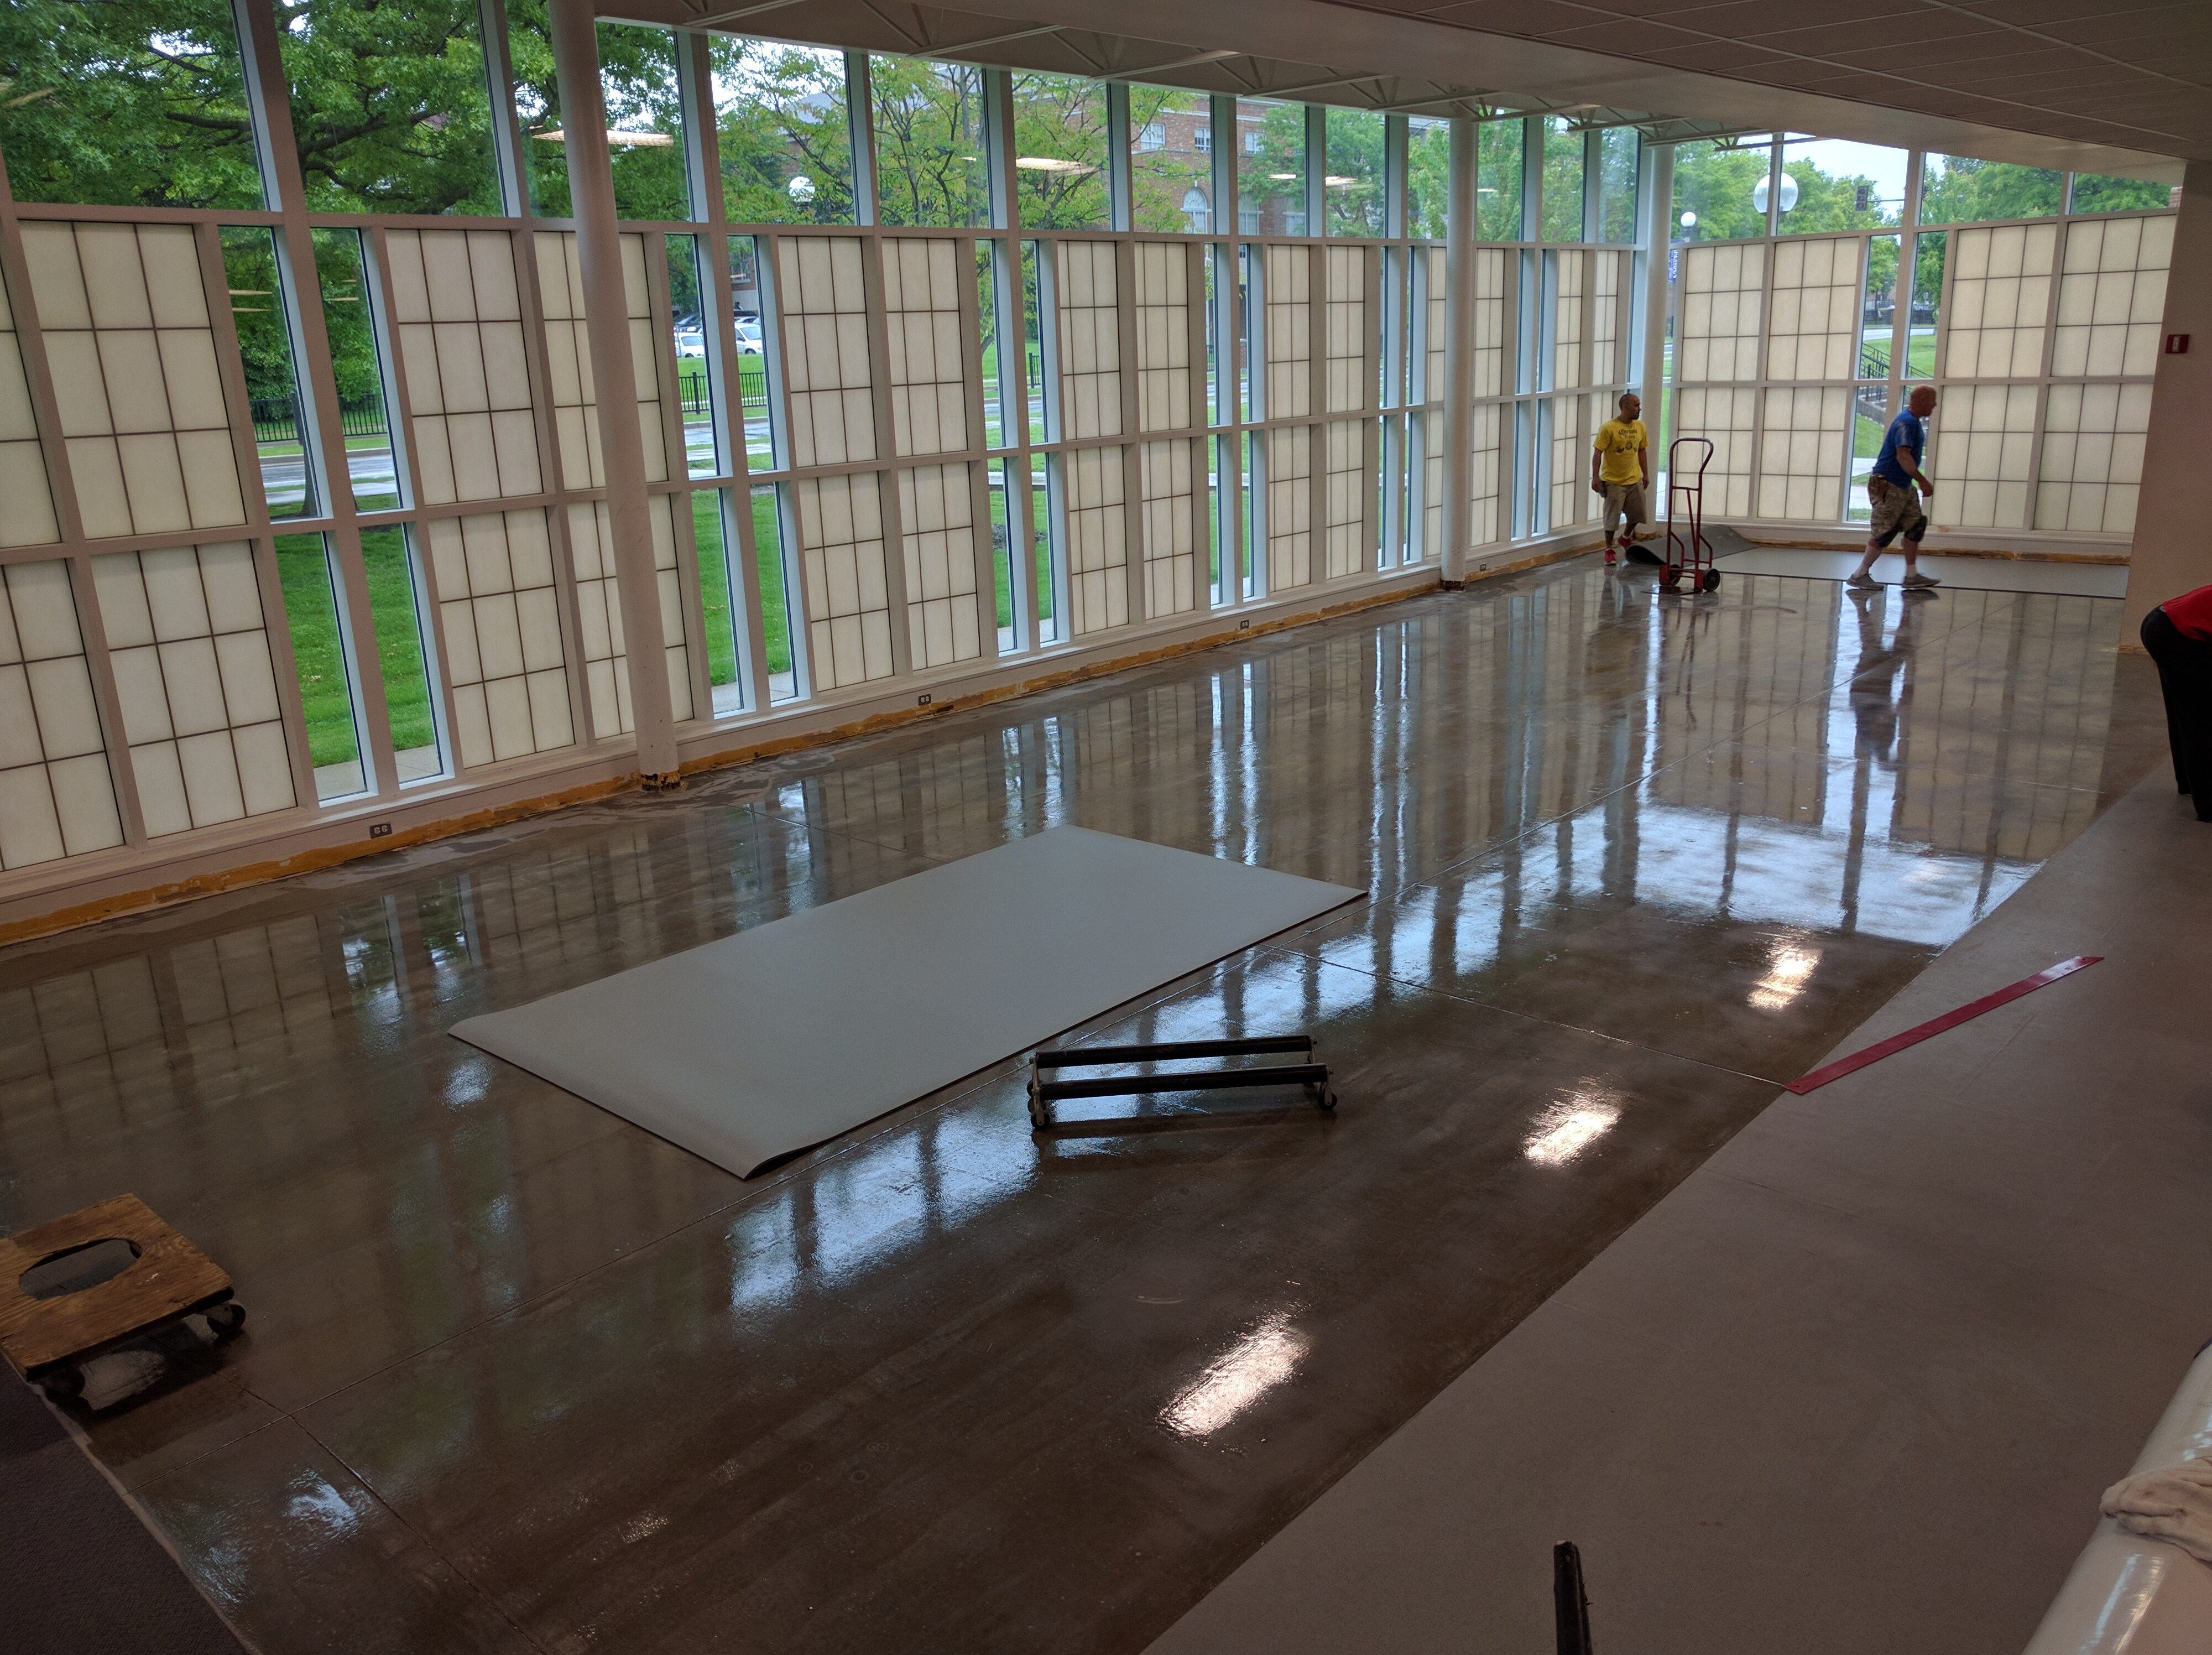 May 20th: Laying out Resilient Flooring